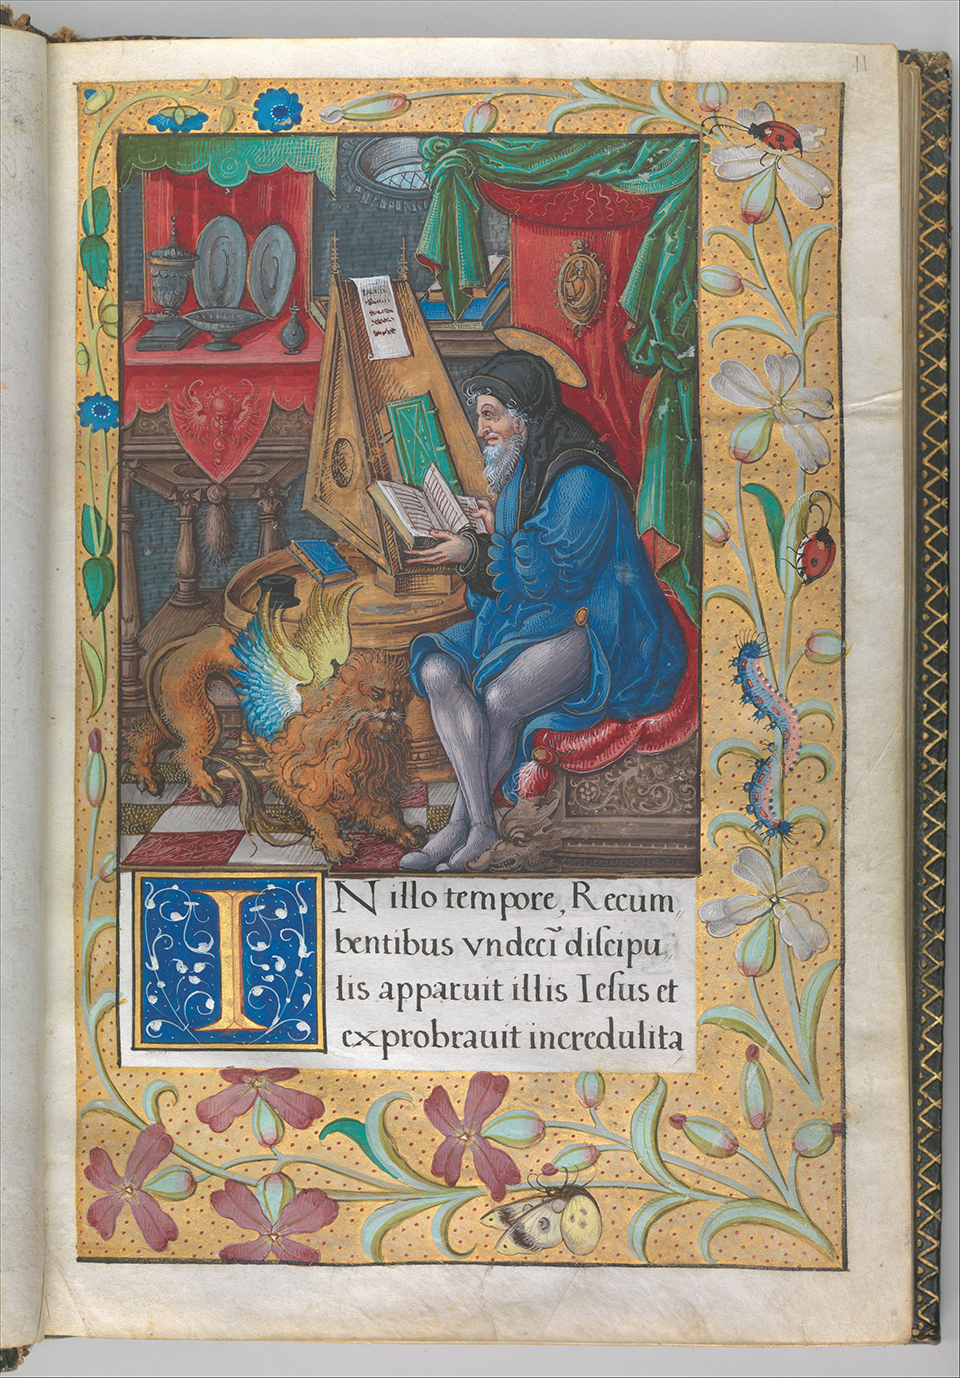 d8 Illuminated Book of Hours made for King Francis I.